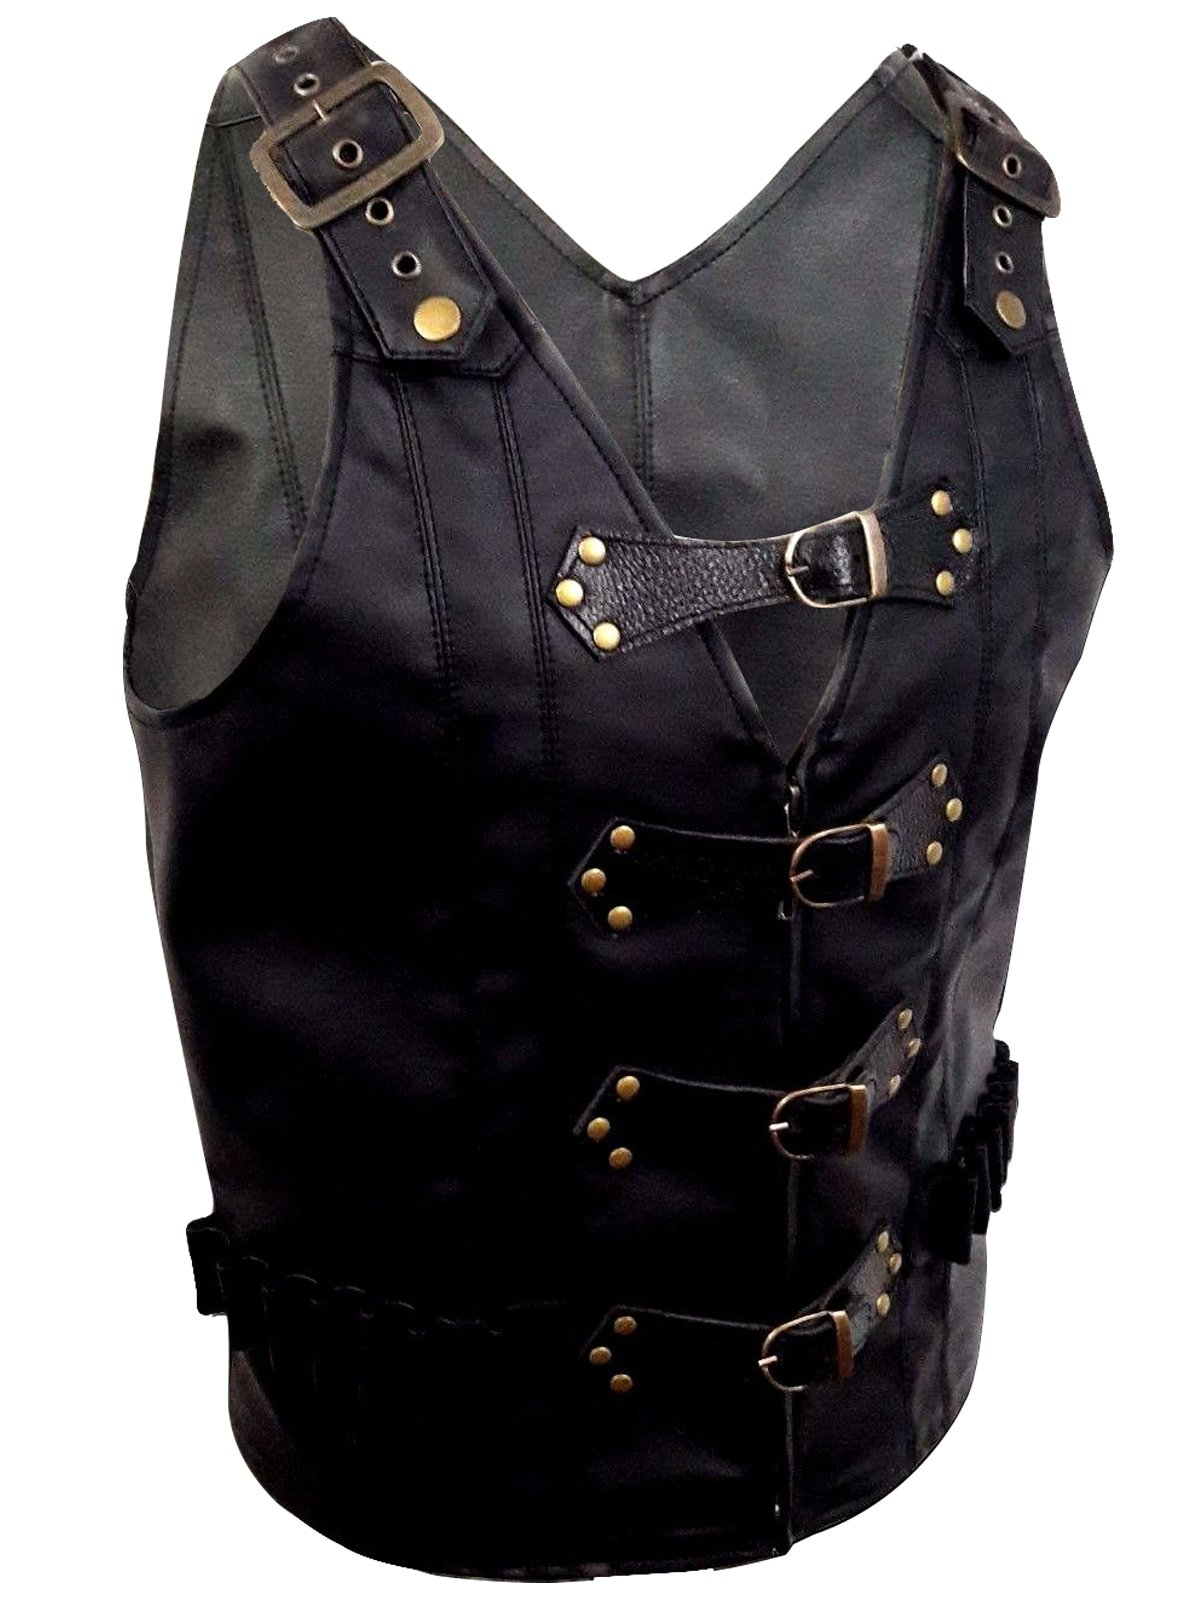 Mens Real Black Leather Heavy Duty Steampunk Gothic Style Vest Waistcoat 5